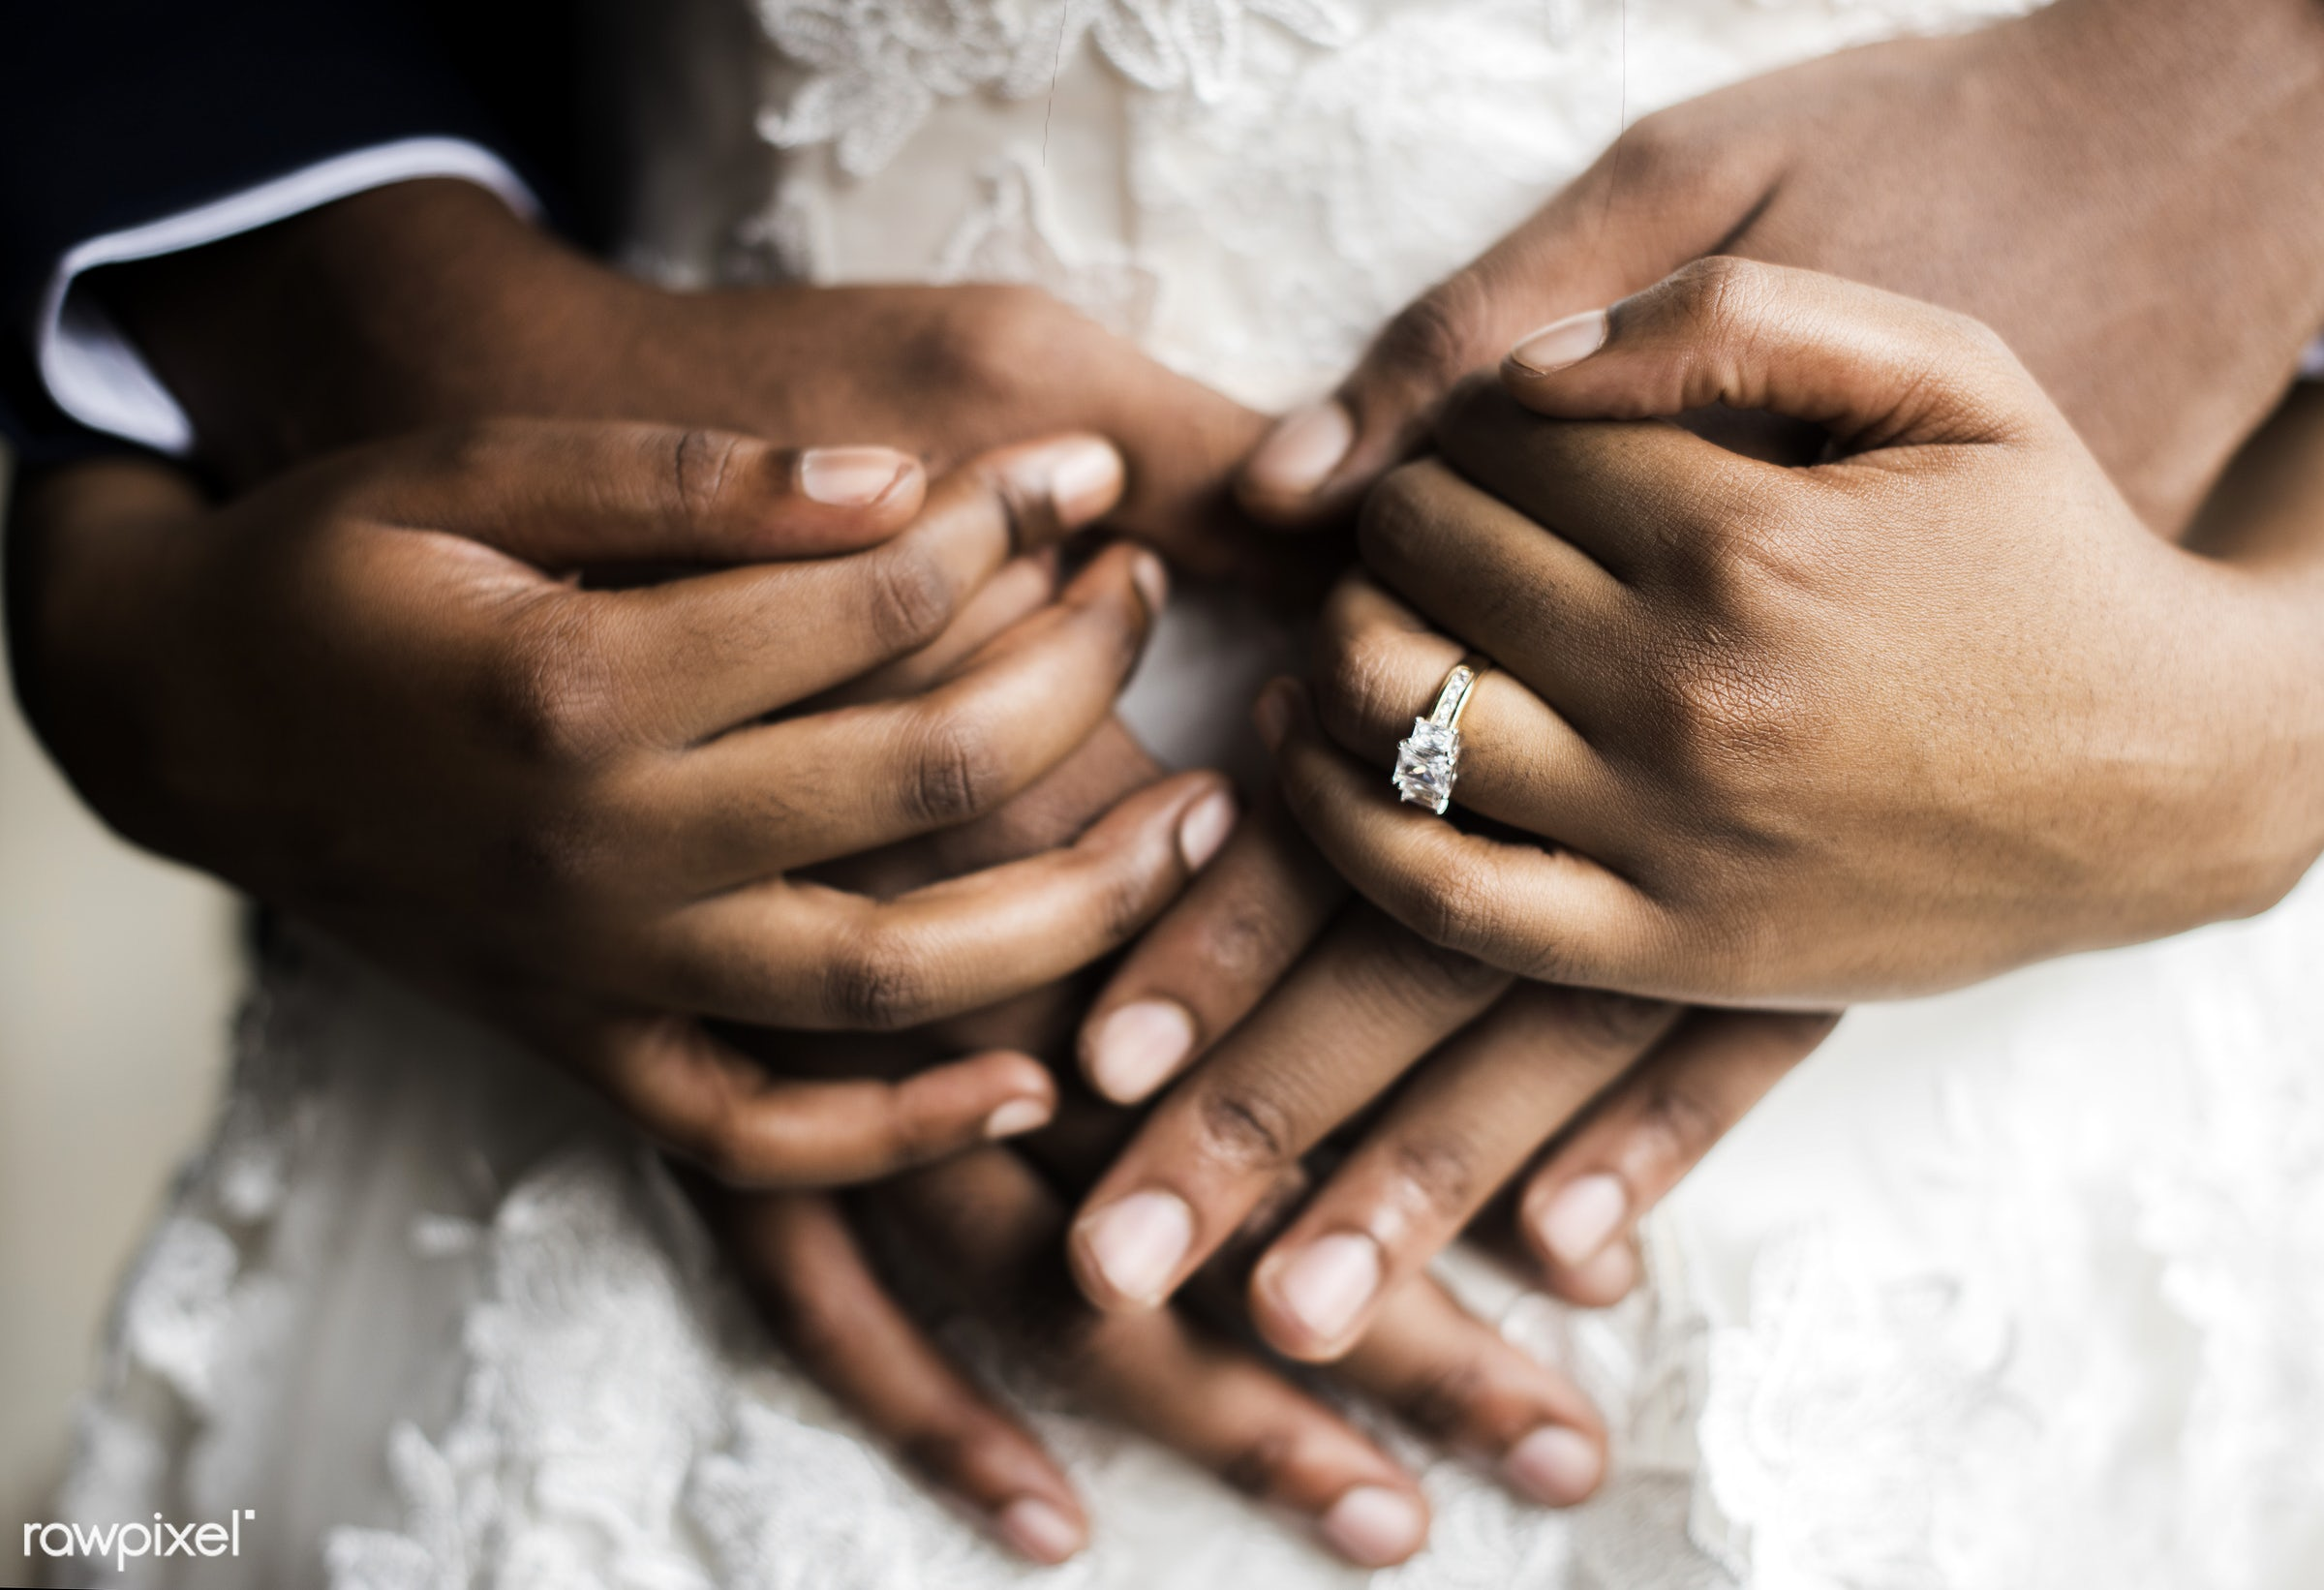 holding, people, together, love, hands, spouse, couple, bride, closeup, ring, african descent, newlywed, romantic, fiance,...